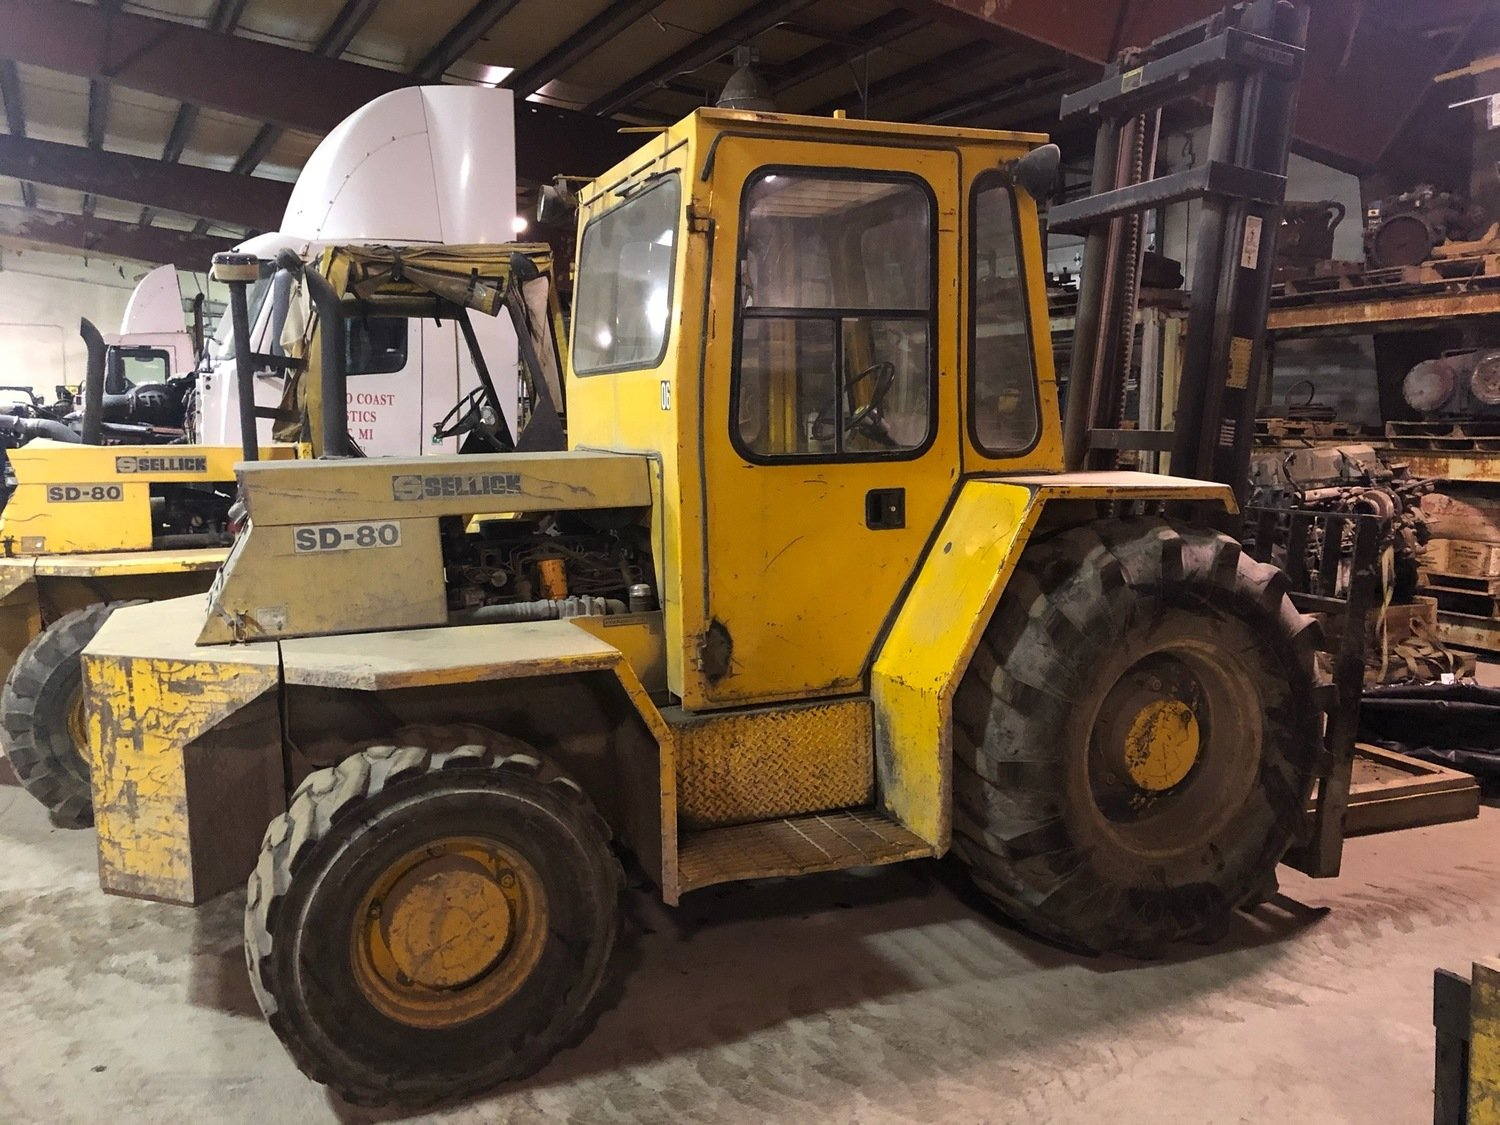 8,000lb Forklift For Sale 4 Ton